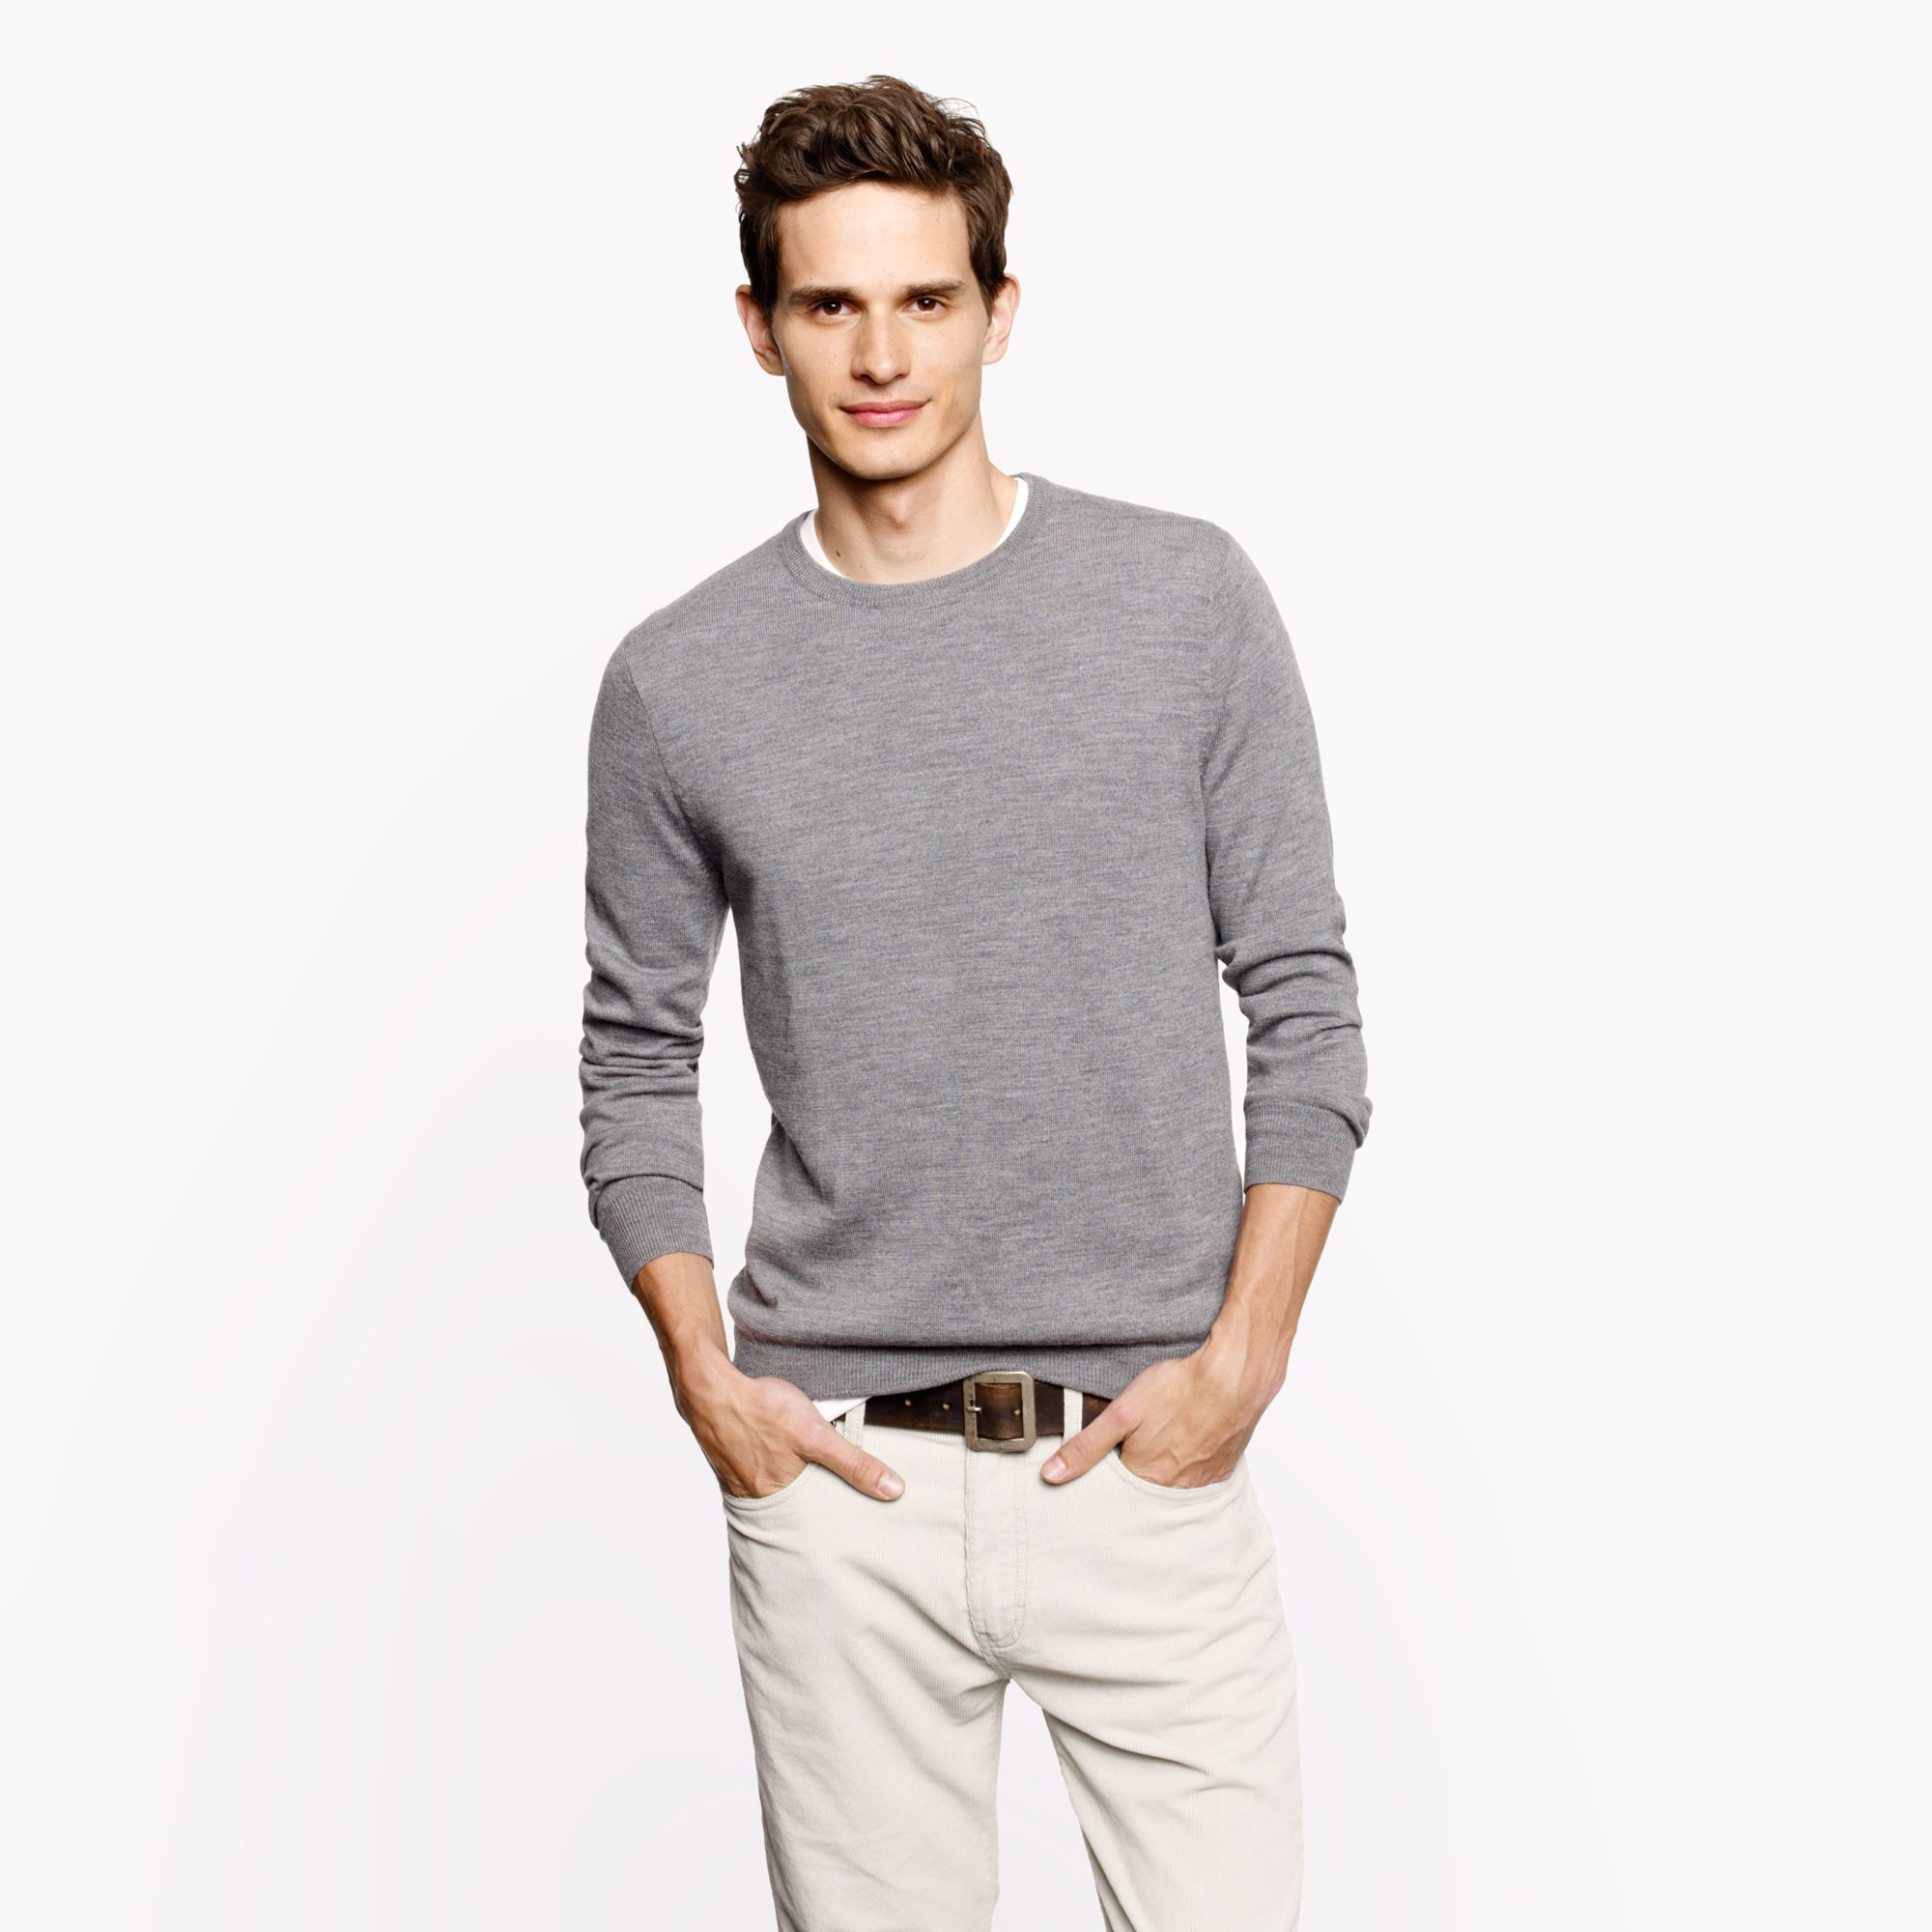 Merino crewneck sweater in gray for men lyst for Flannel shirt under sweater